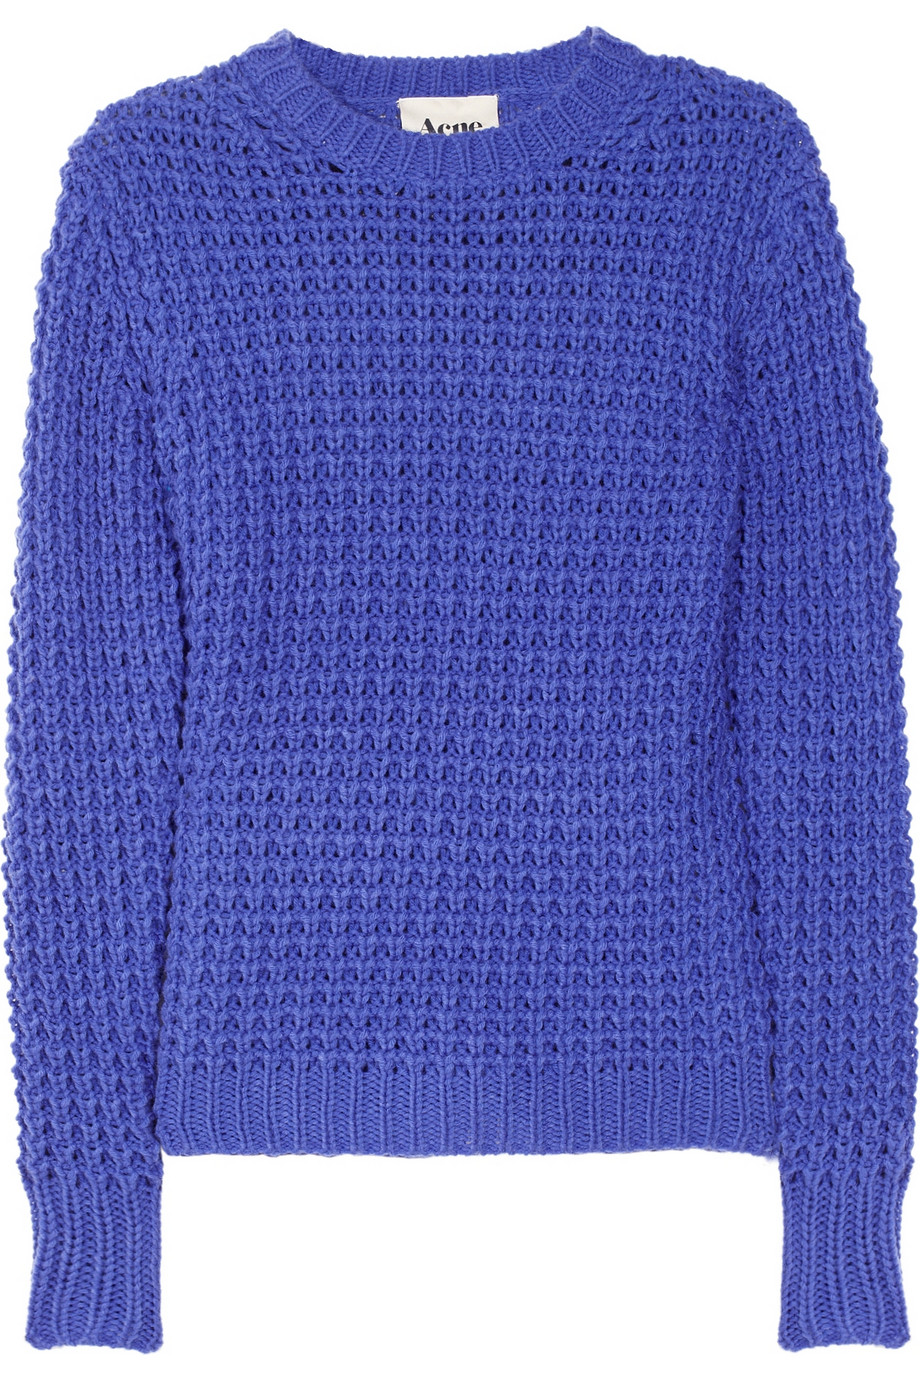 Acne studios Lina Pineapple Chunky Open-knit Sweater in Purple | Lyst